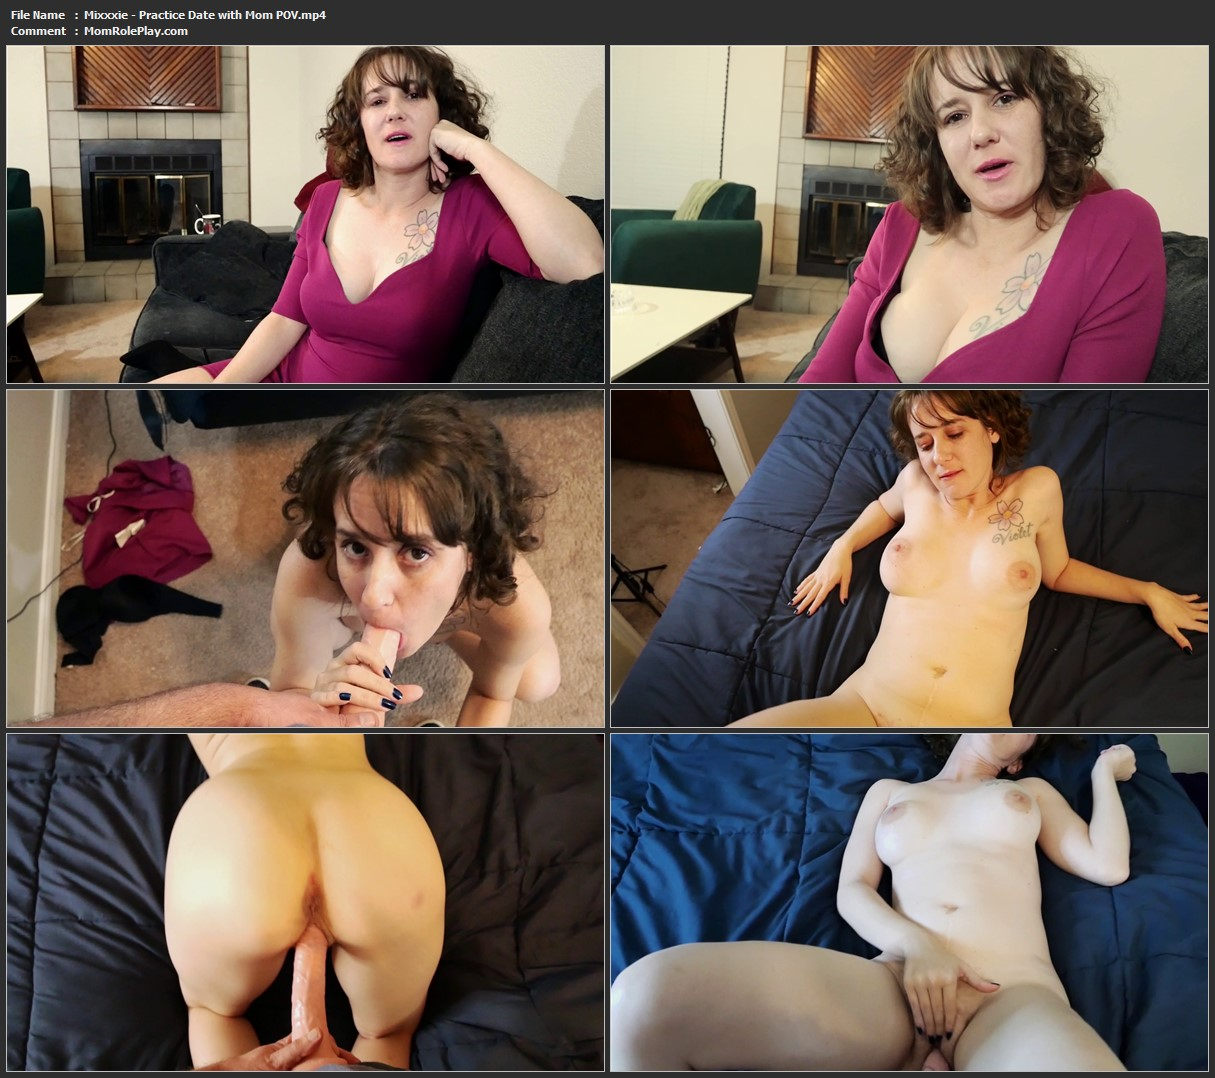 Mixxxie - Practice Date with Mom POV